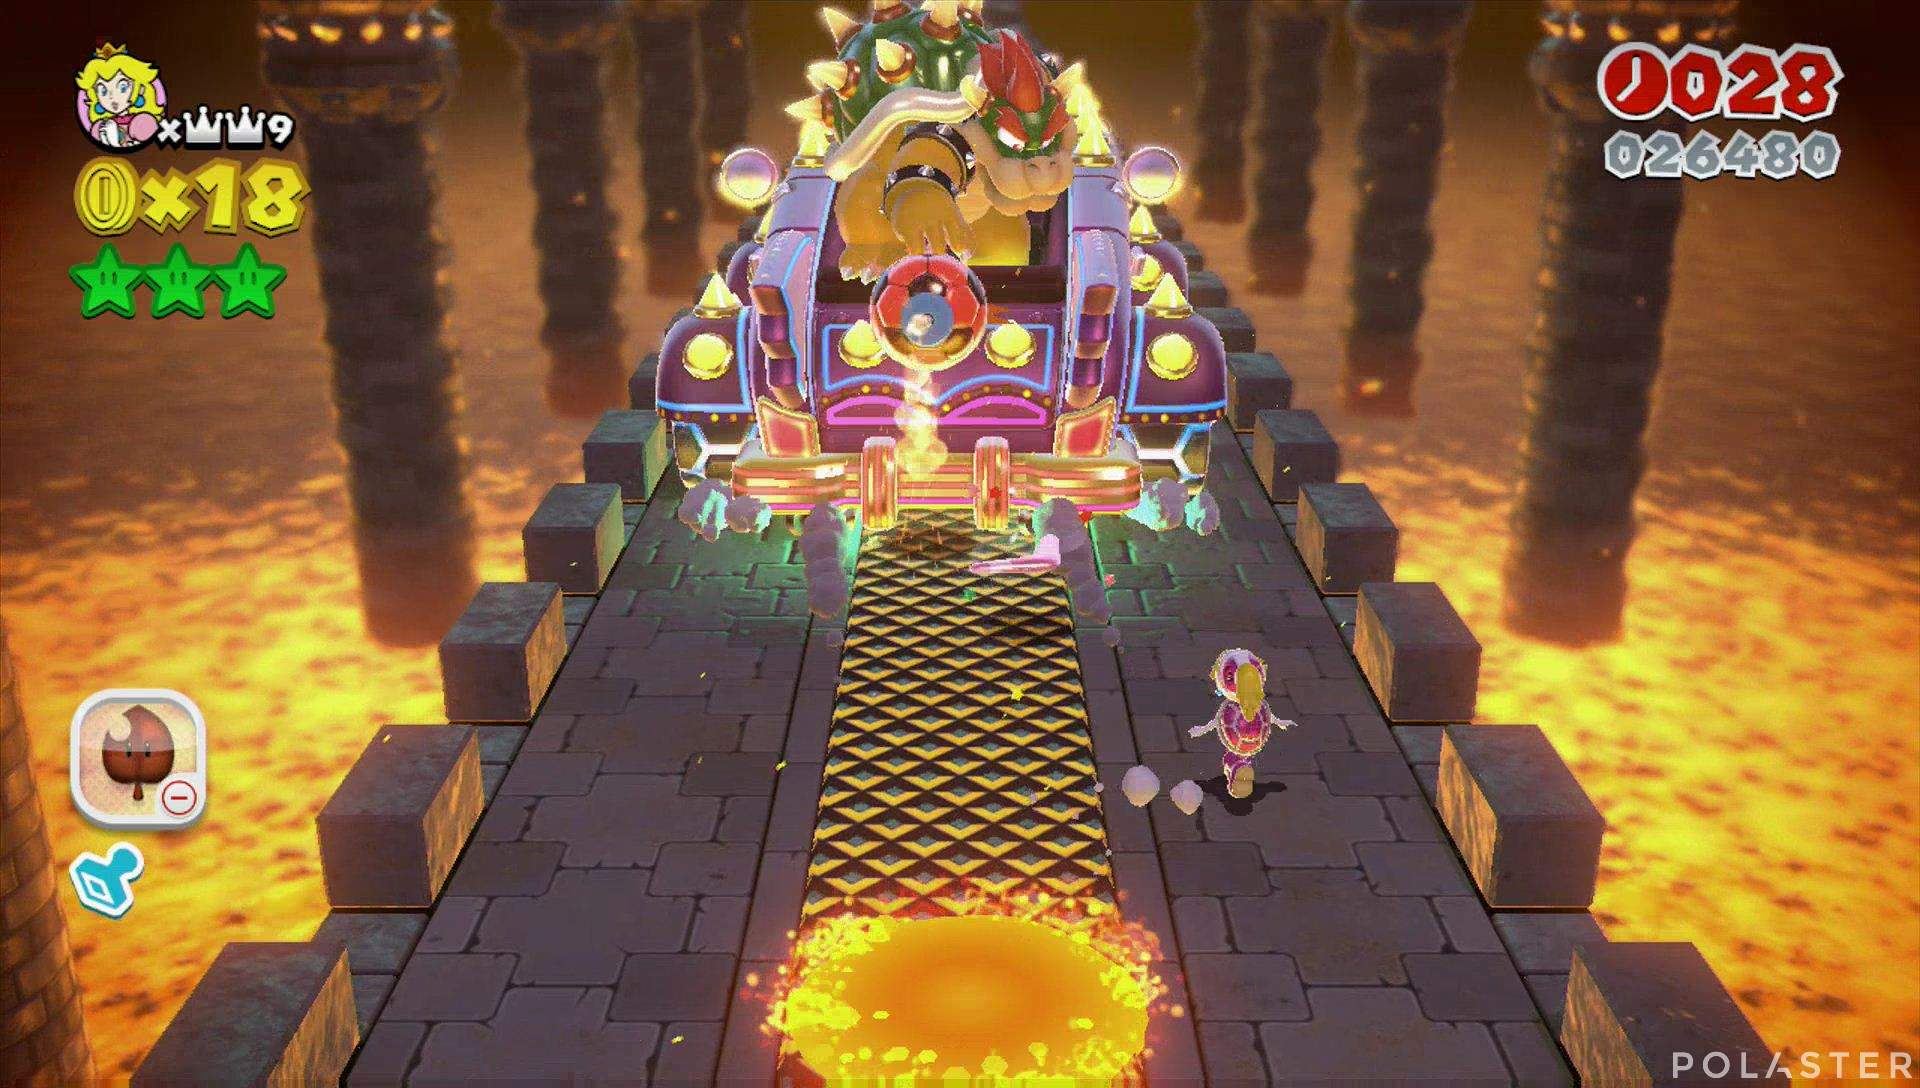 Super Mario 3D World Mundo Castillo-Castillo Jefe Bowser